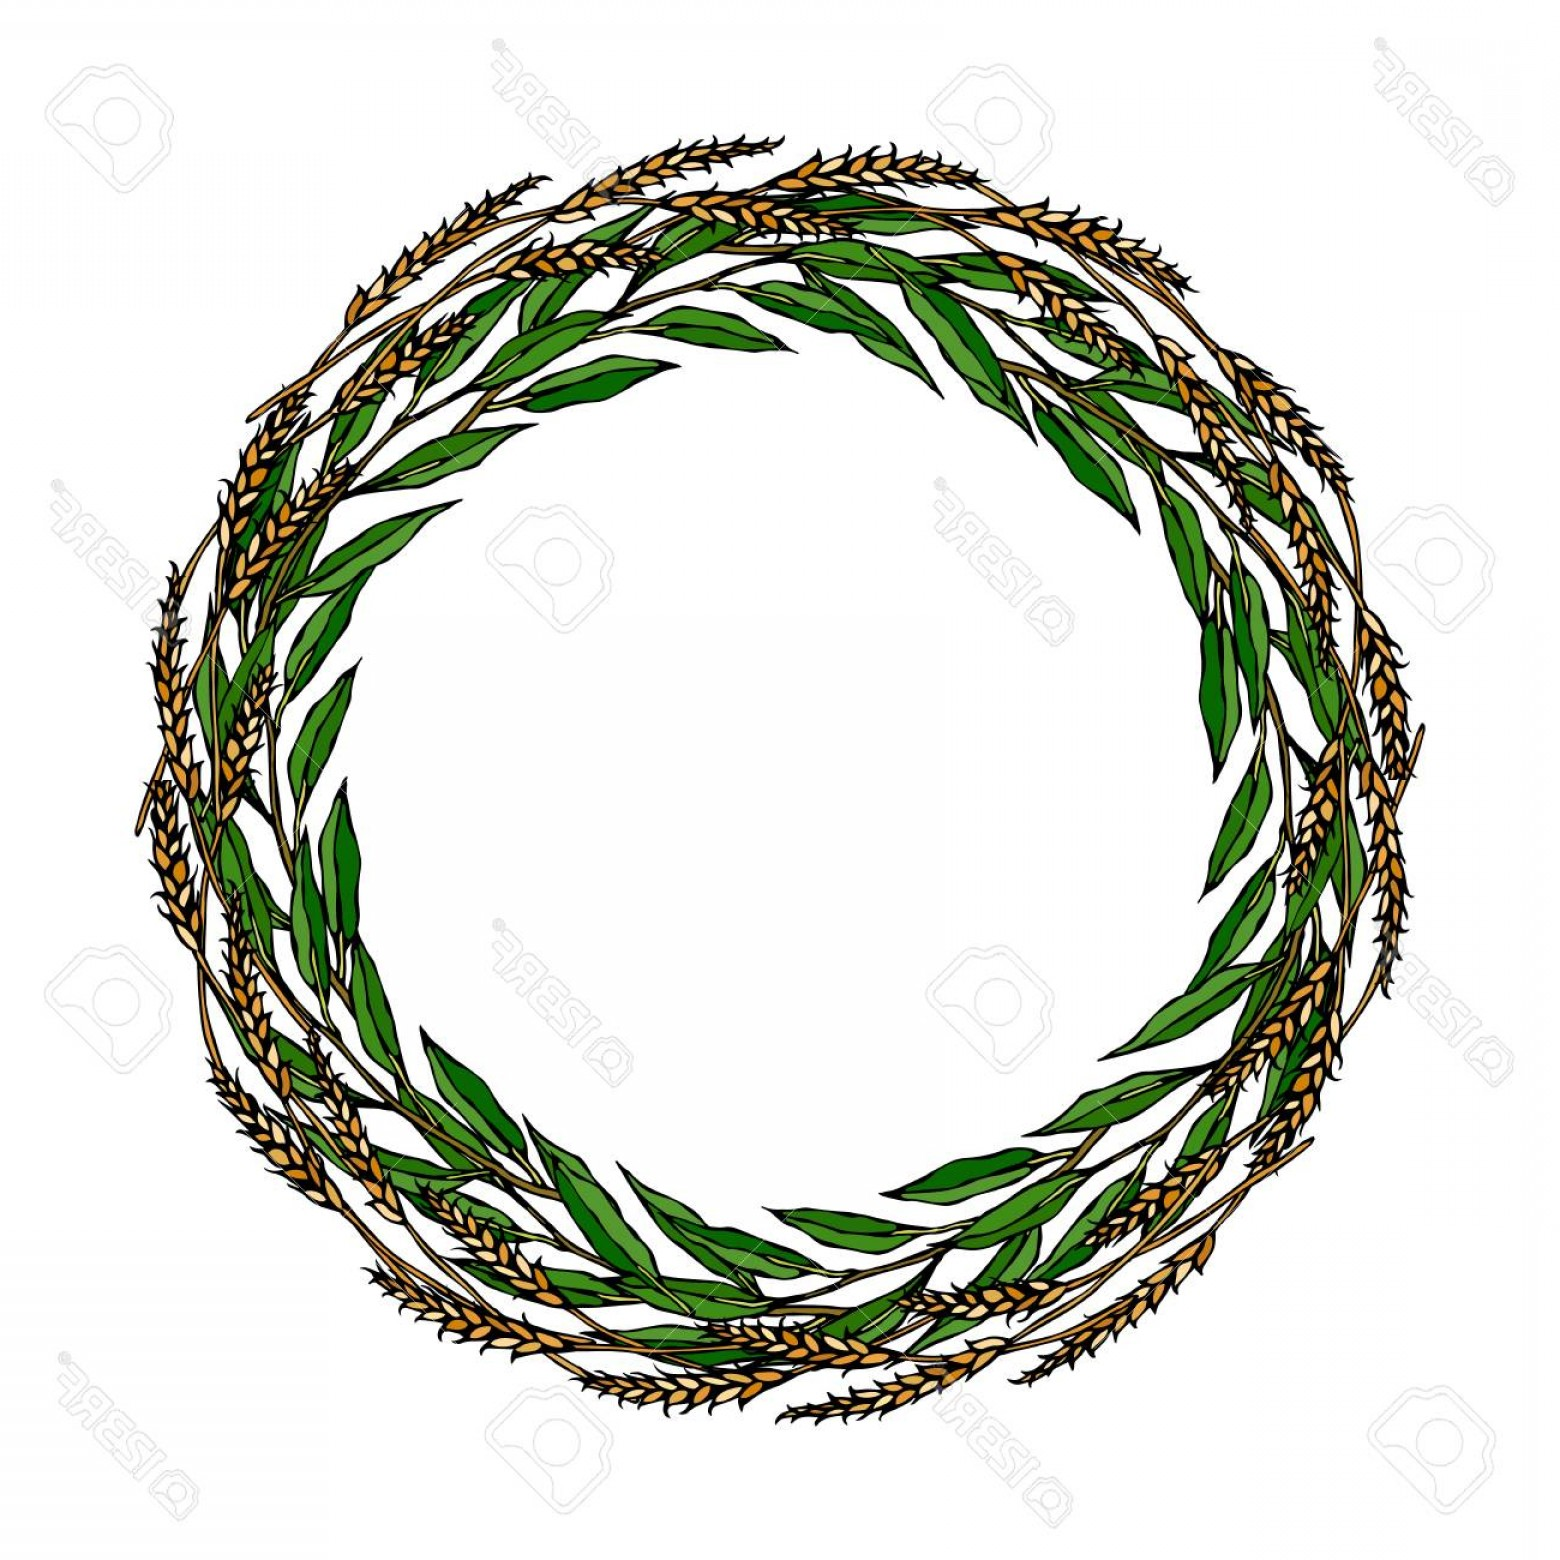 Green Bay Vector: Photostock Vector Wreath Wheat Spikelets And Green Bay Leaf Hand Written Text Round Wreath Of Malt With Space For Text